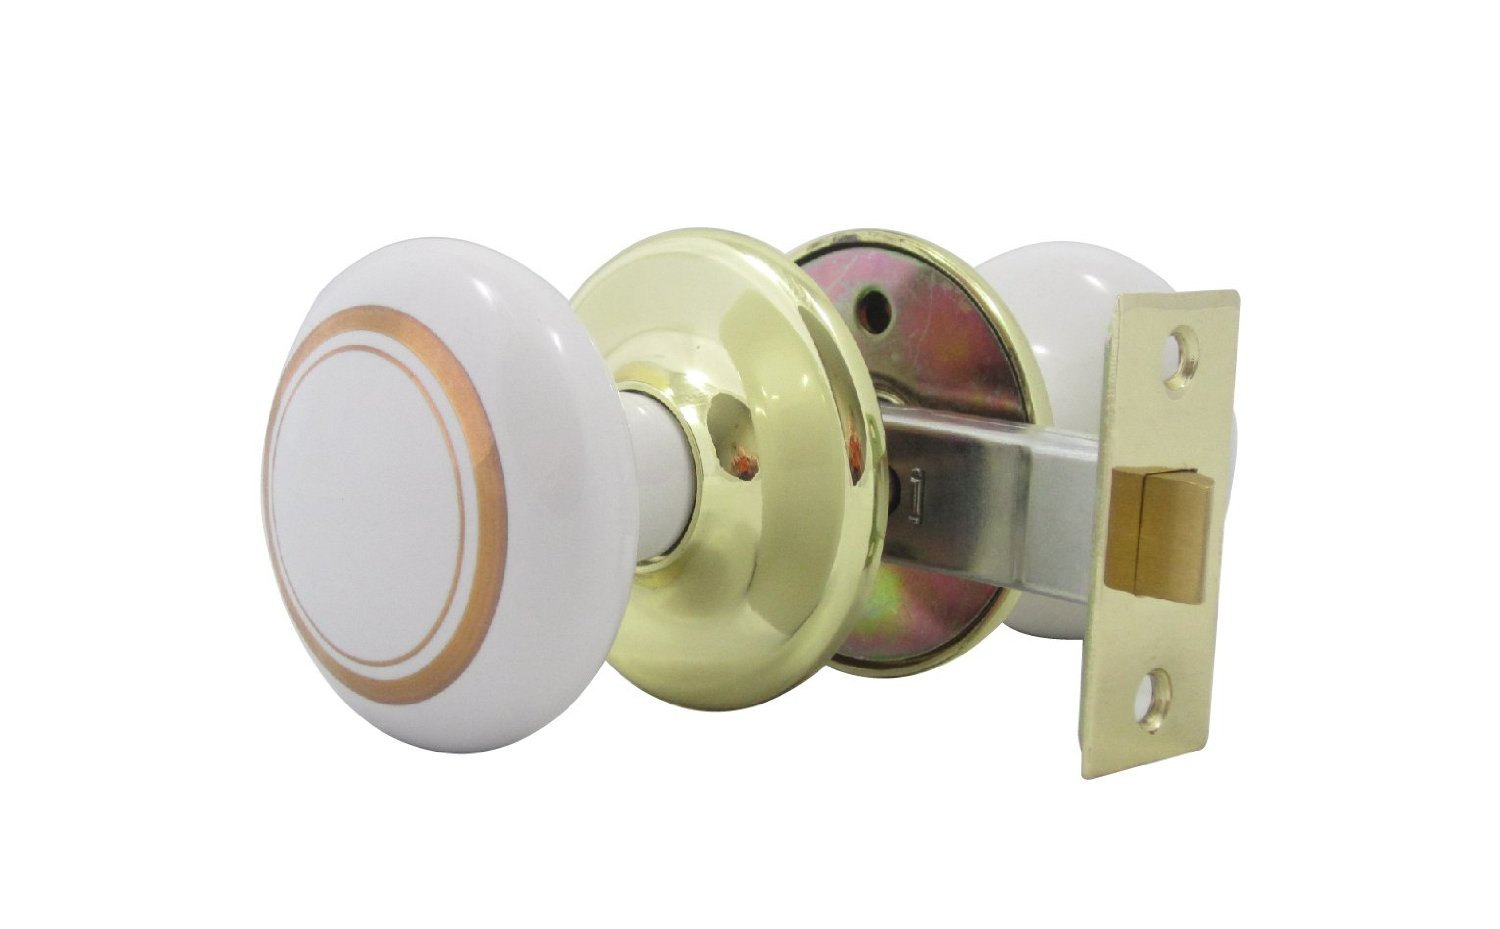 porcelain door knob sets photo - 8